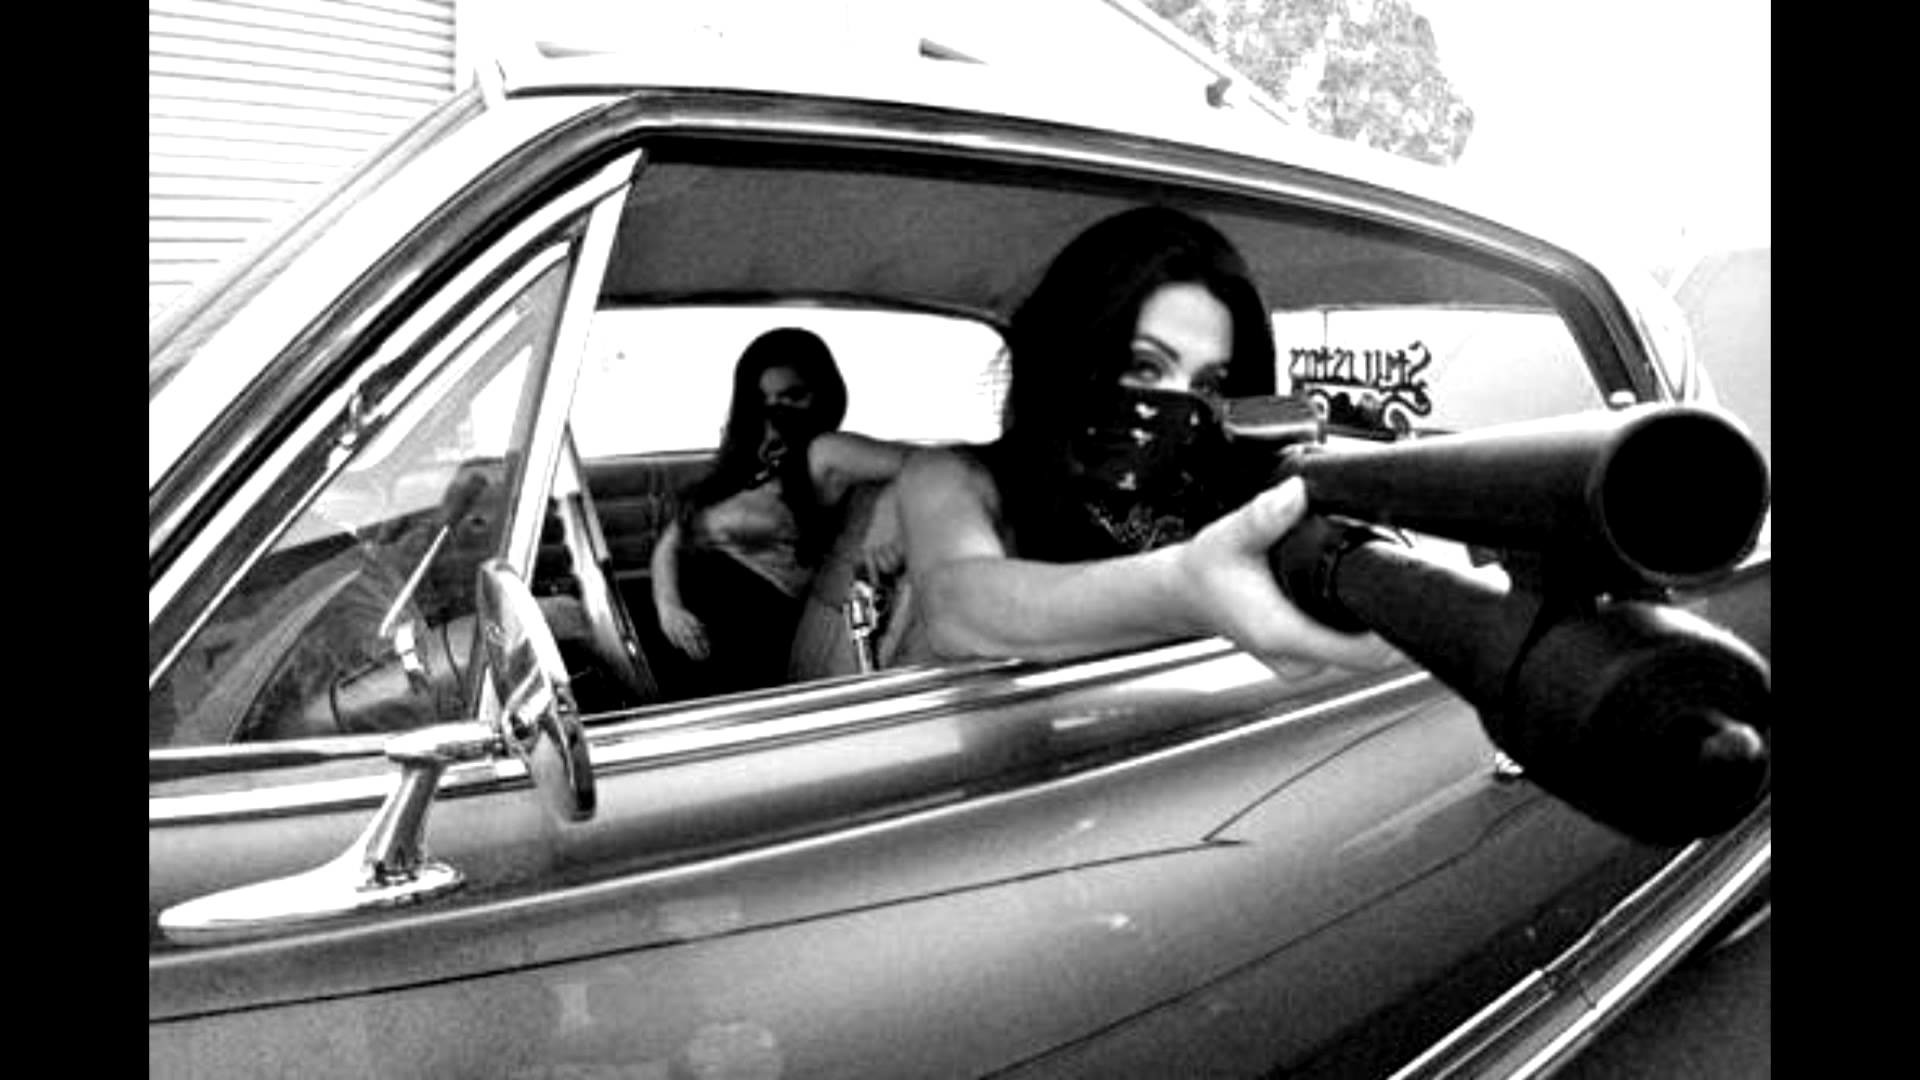 Girls And Lowrider Wallpaper Pic Mexican Gangster Girl Wallpaper 51 Images